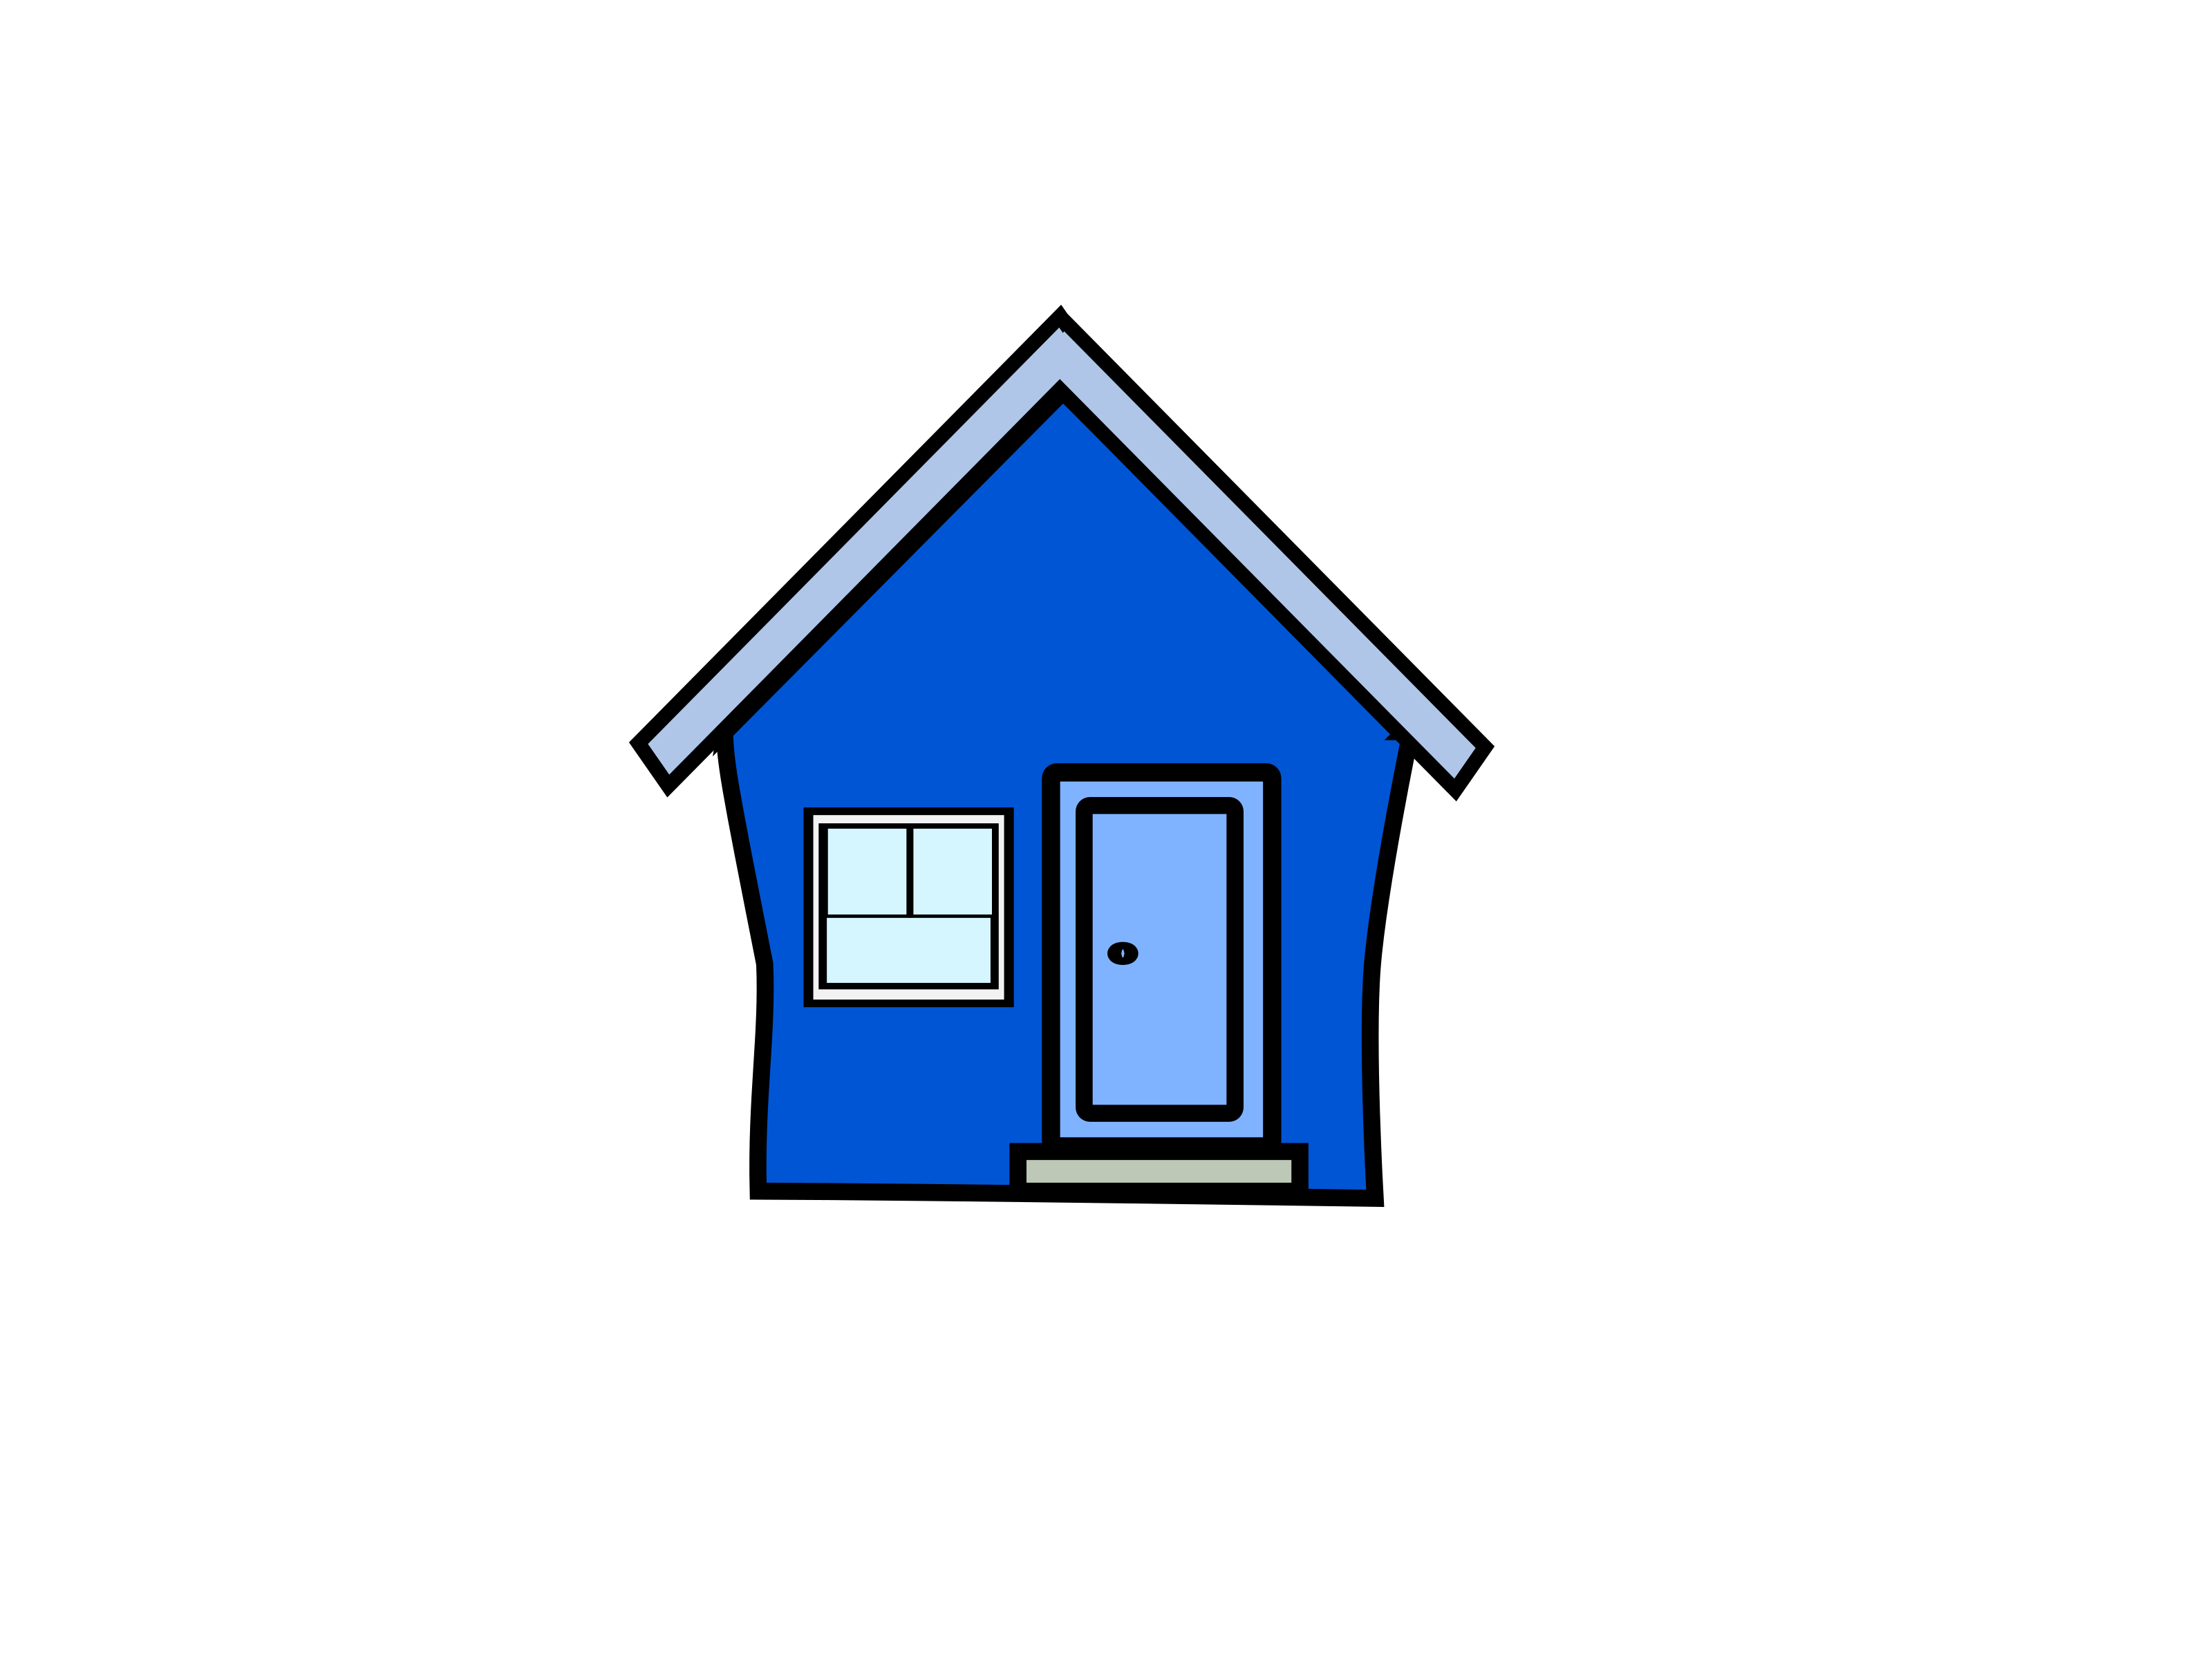 Neighbors clipart colored house. Interior at getdrawings com